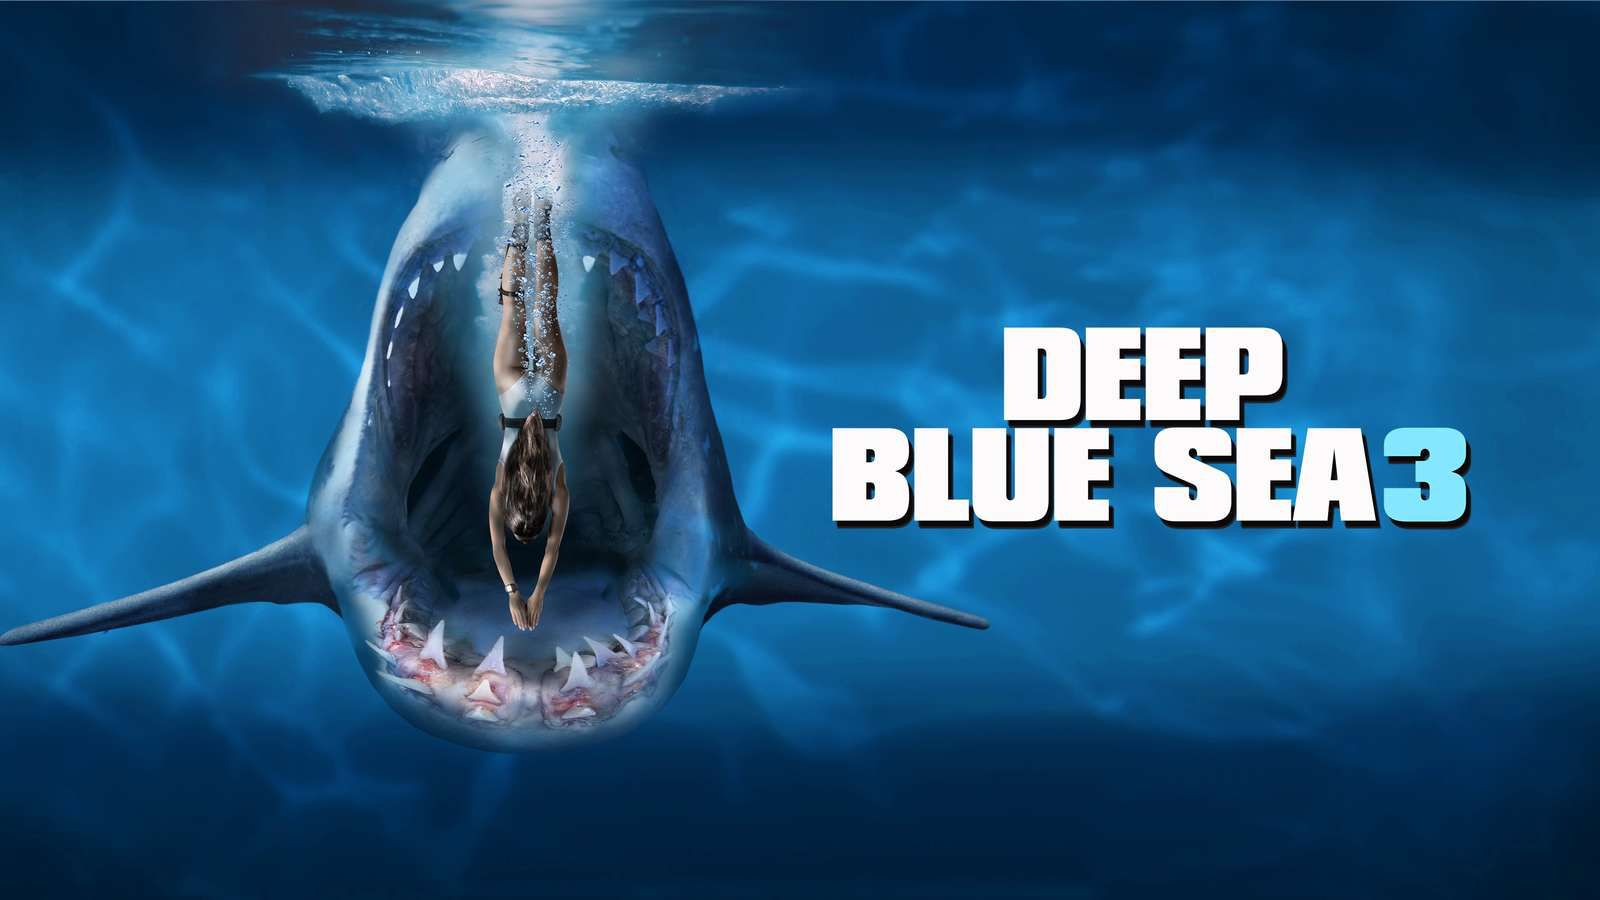 Deep Blue Sea 3 (2020) Subtitle (English SRT) Subtitles Download